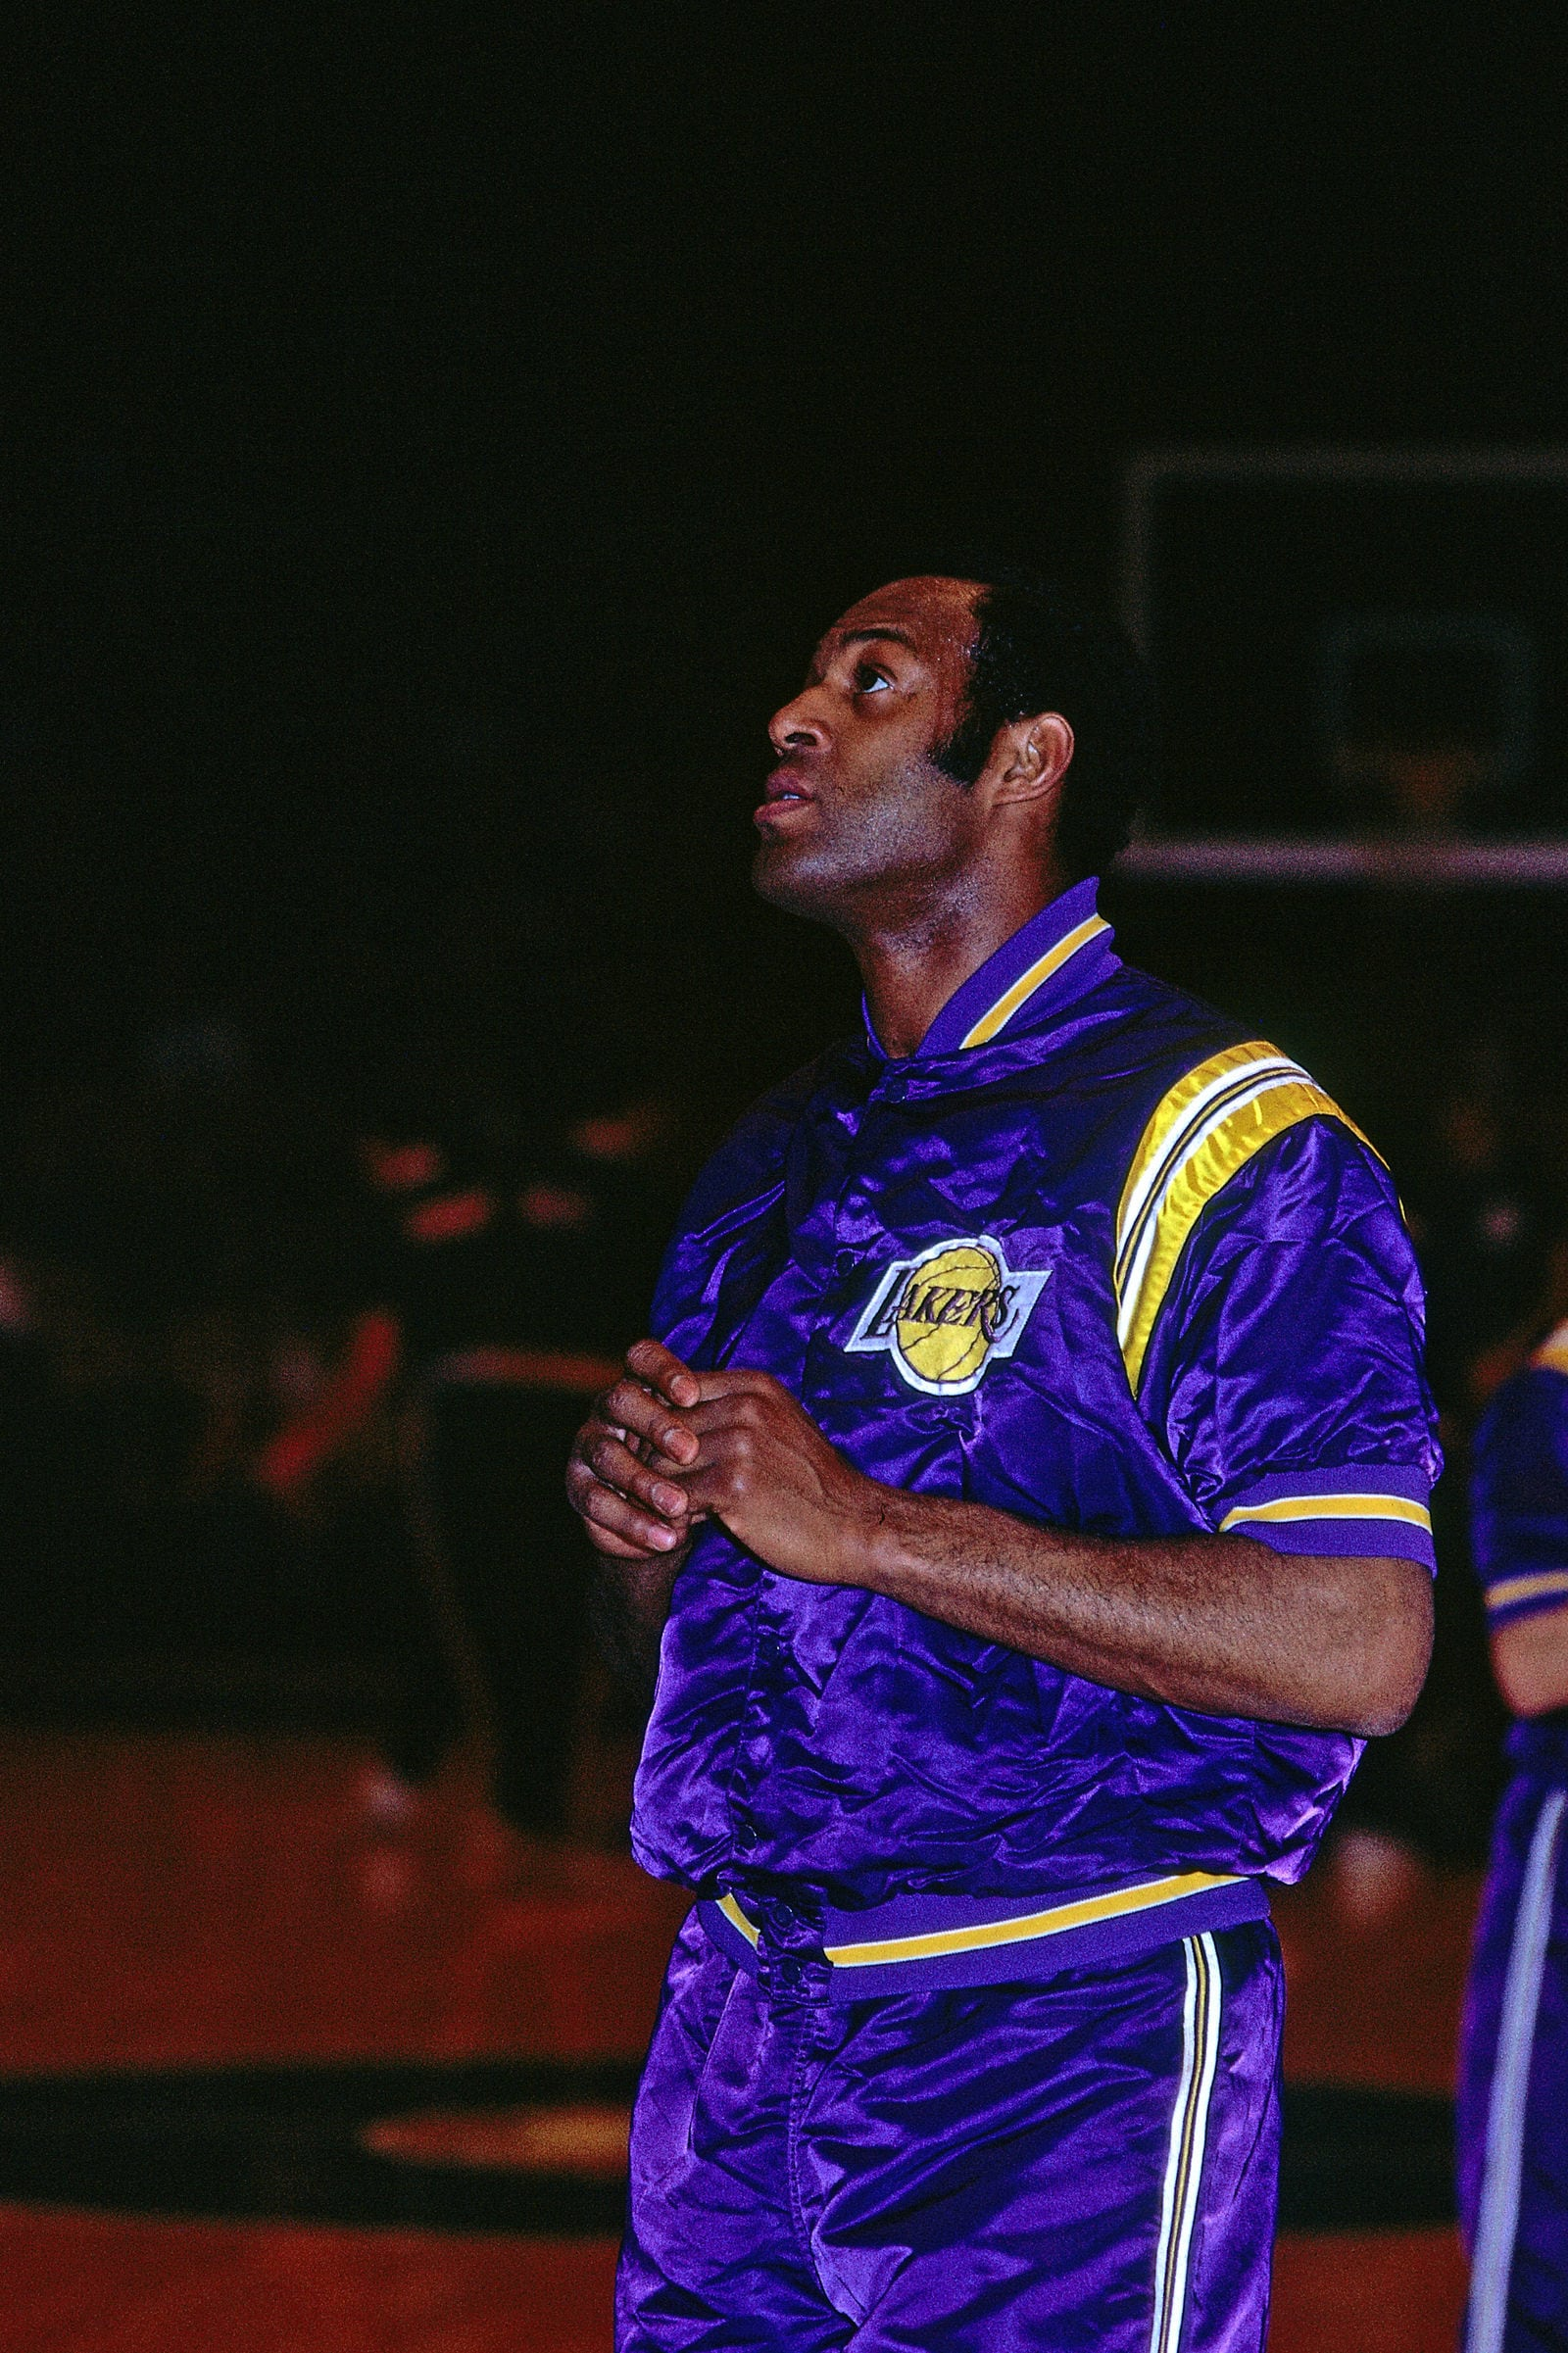 Elgin Baylor #22 of the Los Angeles Lakers warms up before the game against the Milwaukee Bucks on January 21, 1969 at the Milwaukee Arena in Milwaukee, Wisconsin.